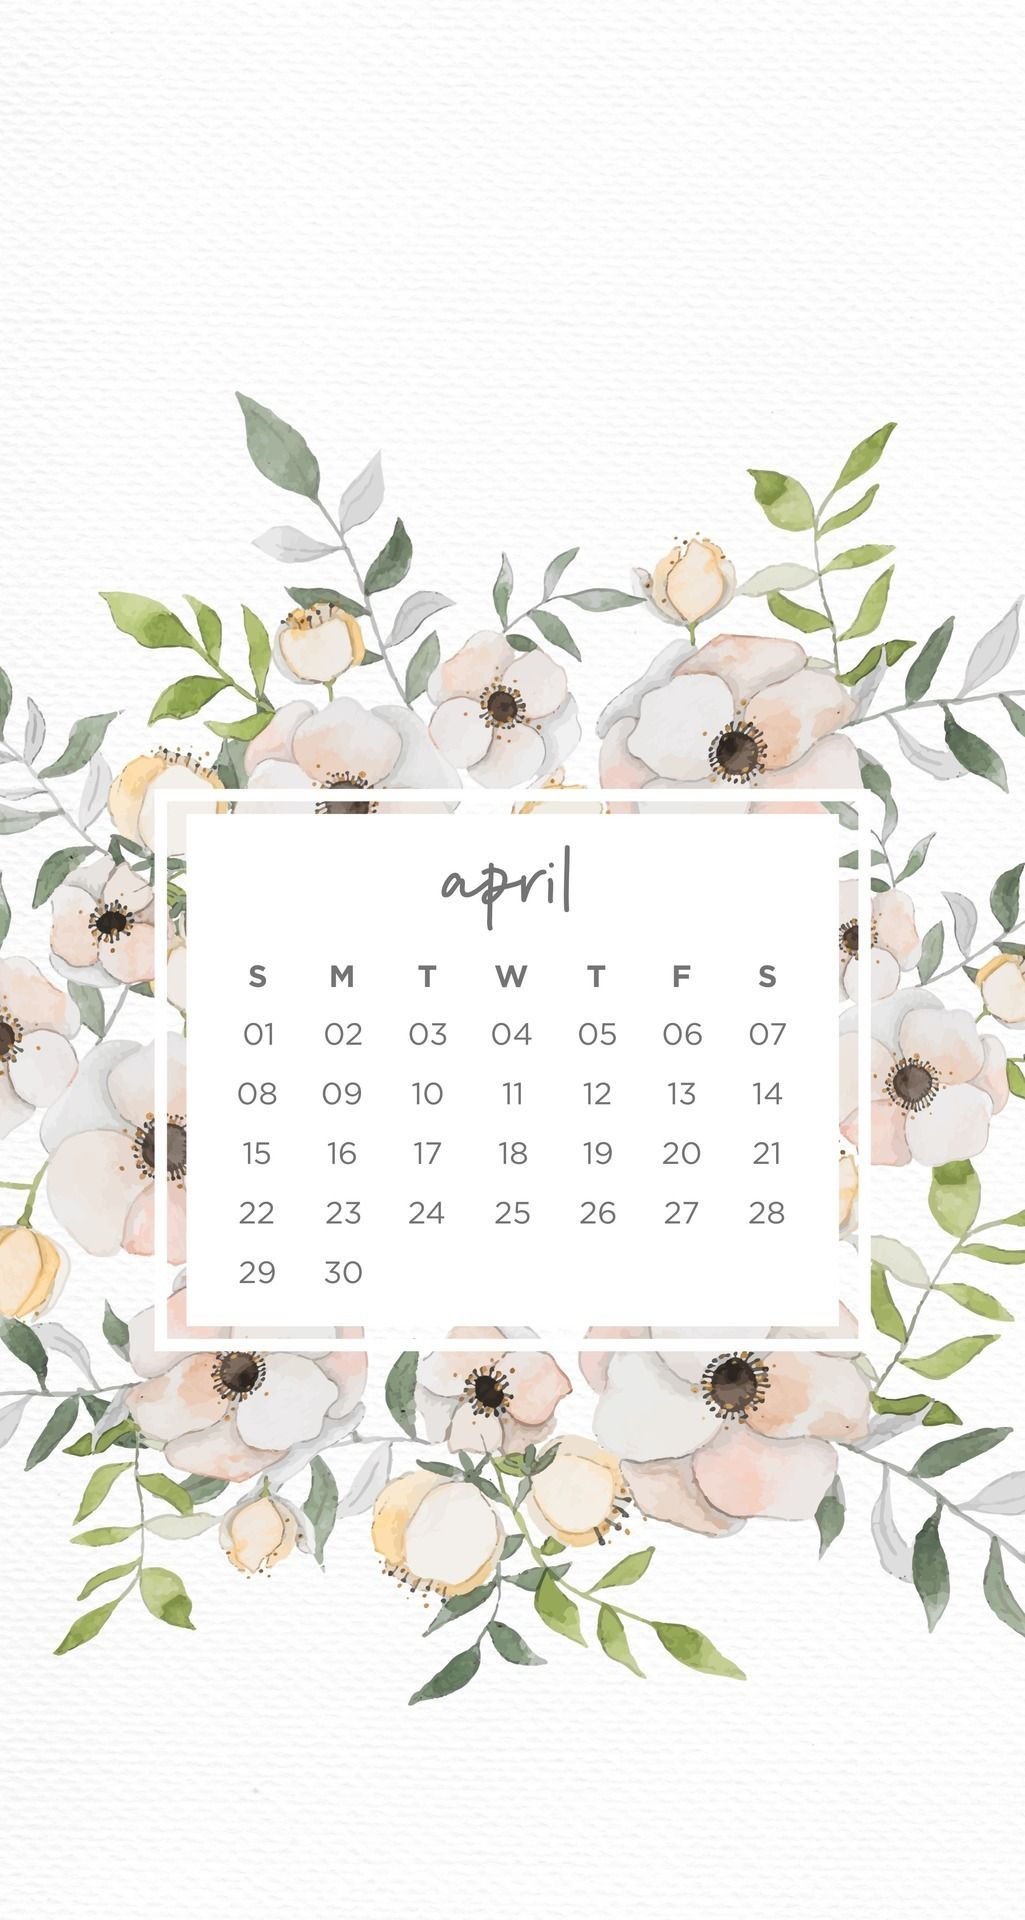 Pin By Napatsorn T On Wallpapers Calendar Wallpaper Spring